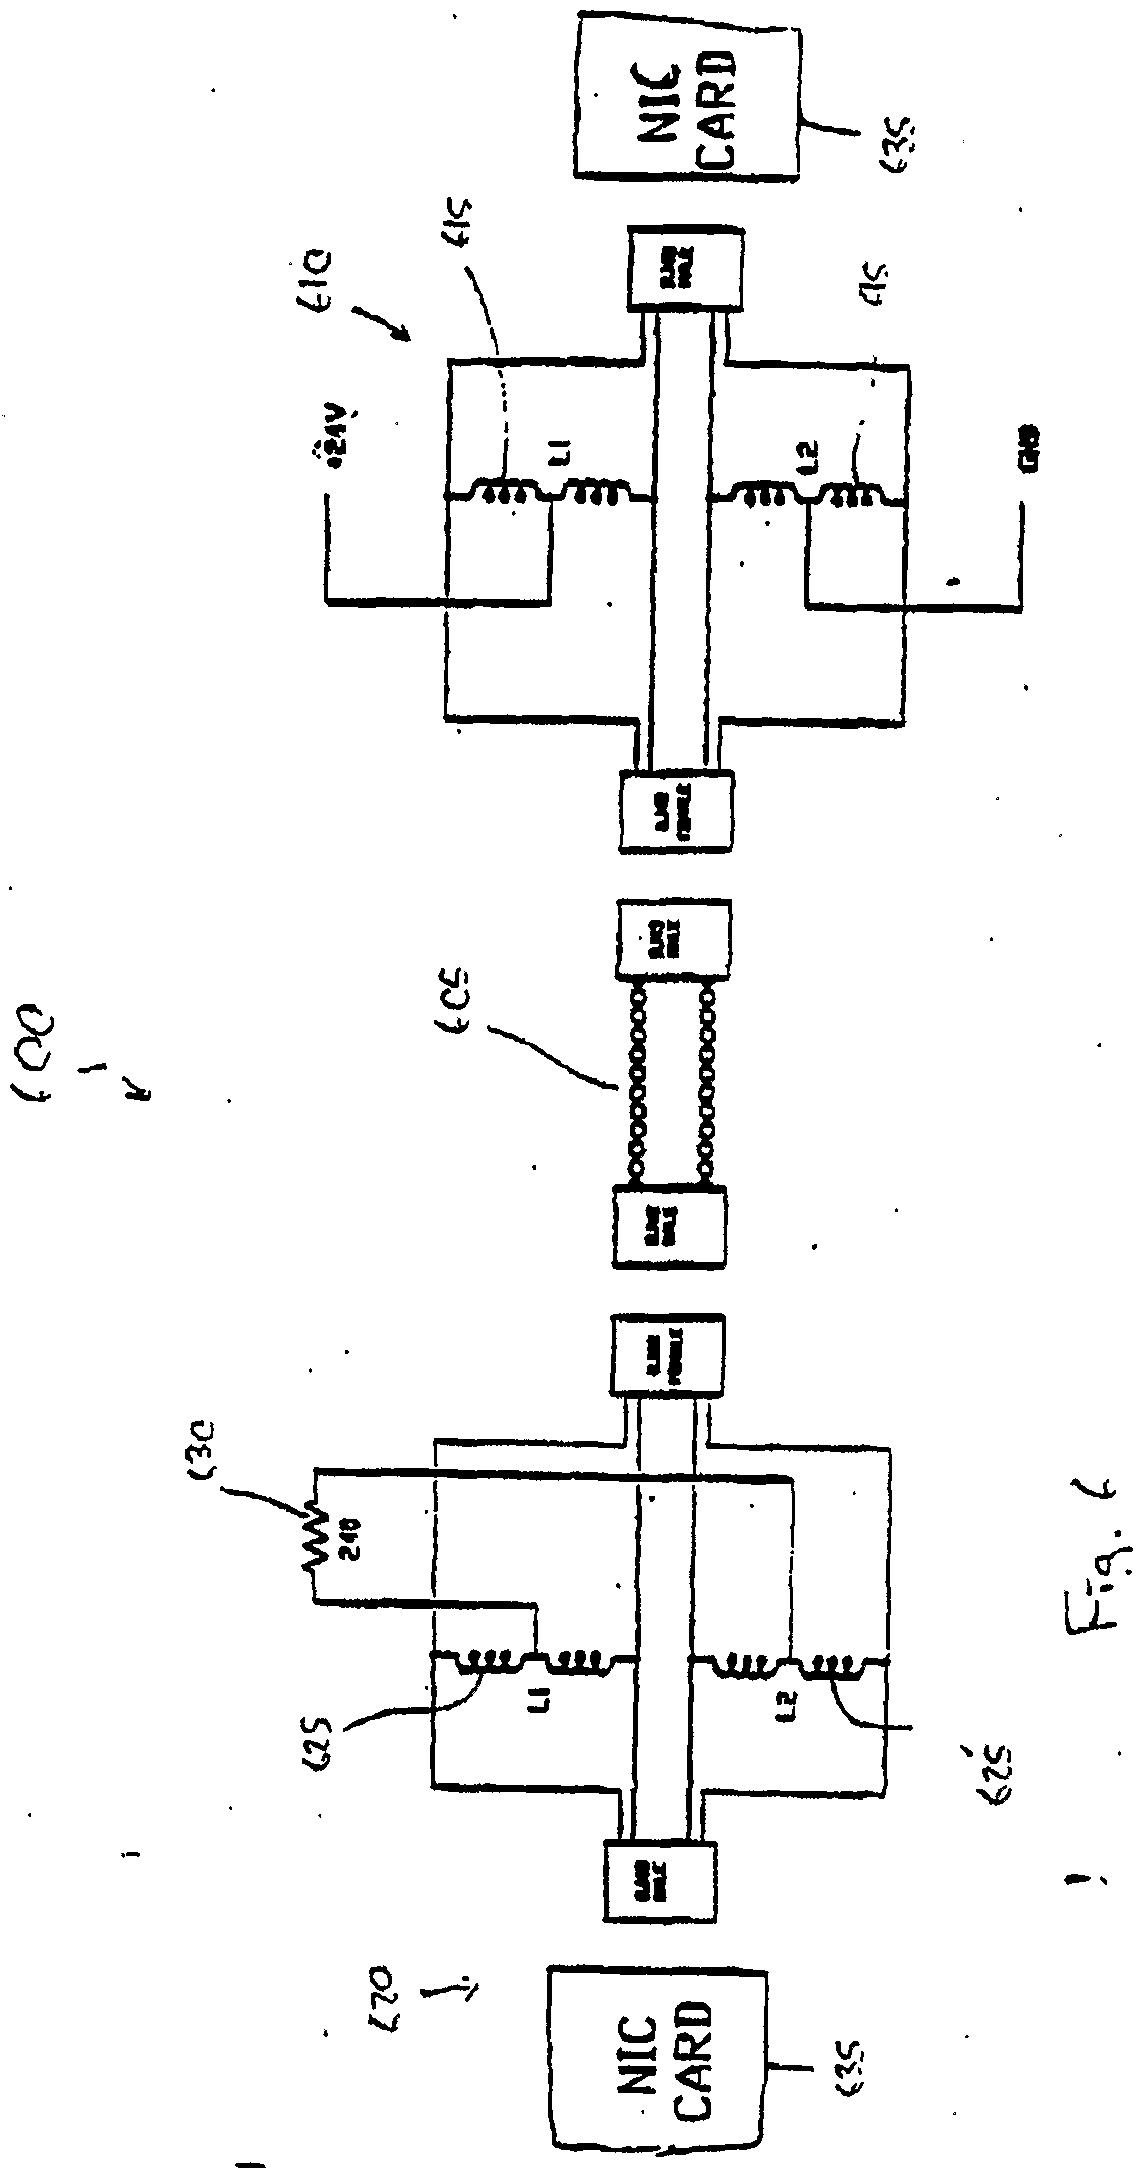 Wo2001009690a1 Methods And Apparatus For Object Based Process Figure 635 Power Supply Assembly Pointtopoint Wiring Diagram Imgf000212 0001